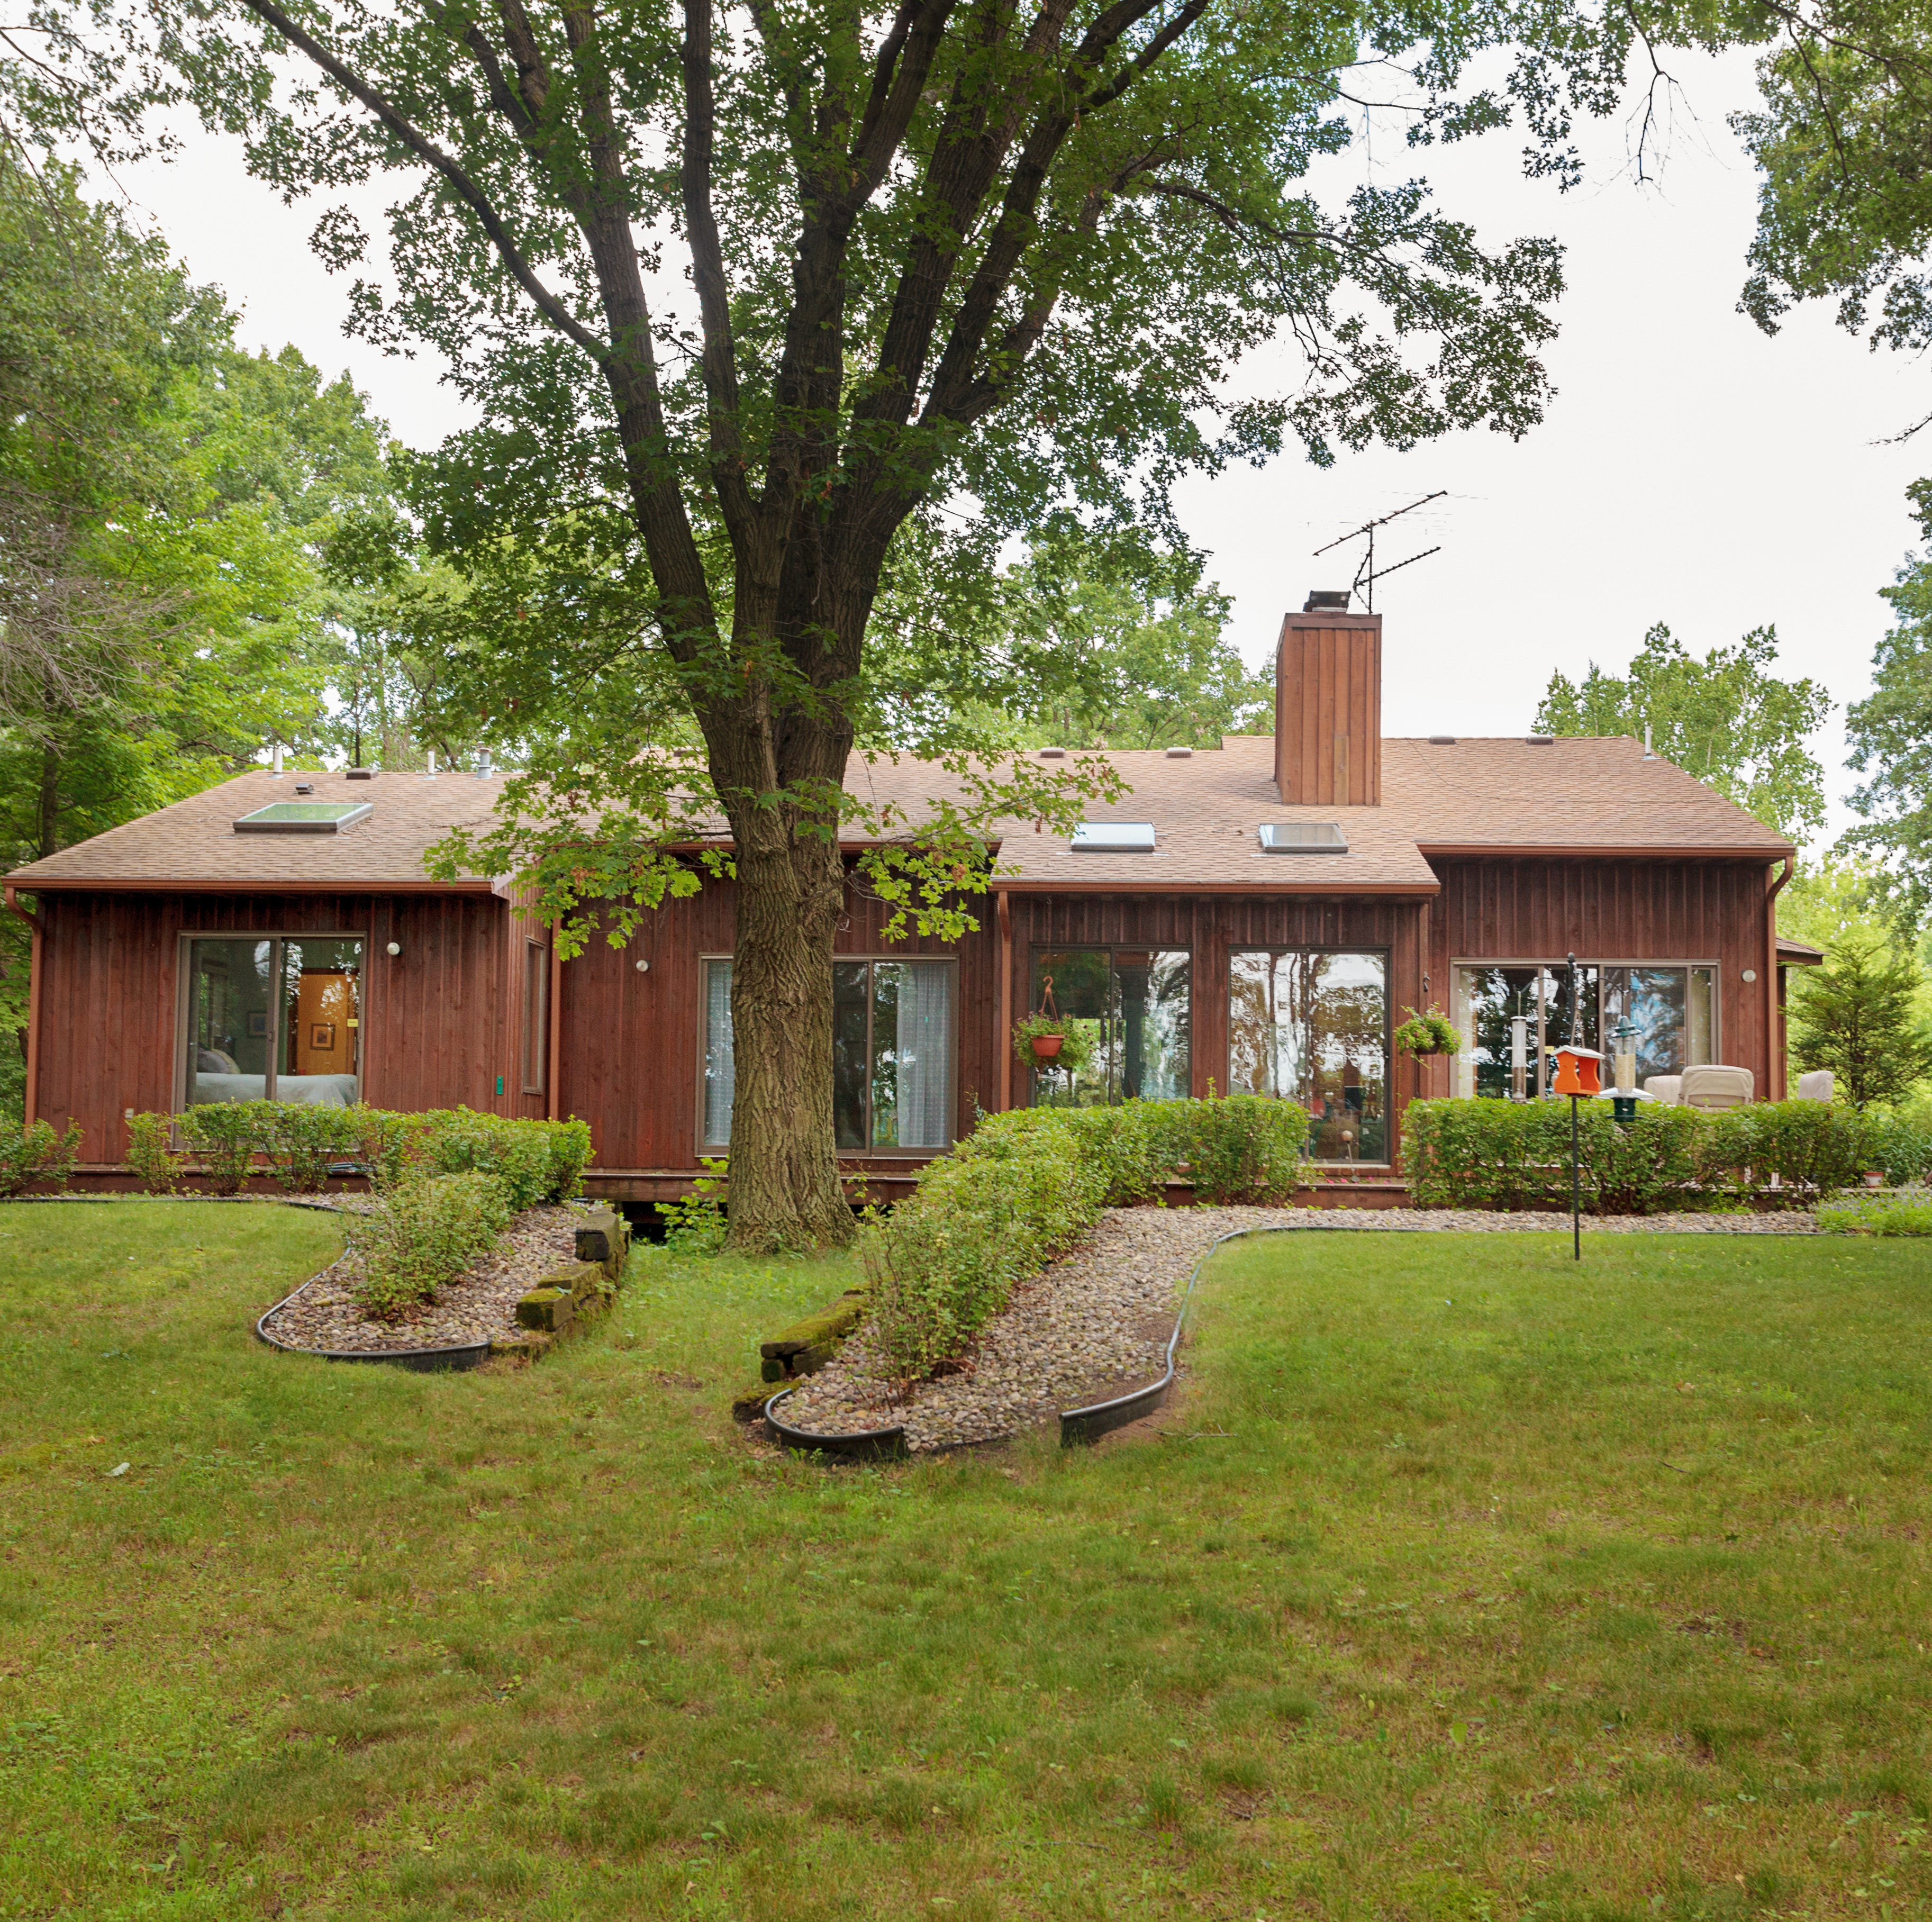 Mansion on the market: Nature surrounds South Haven home